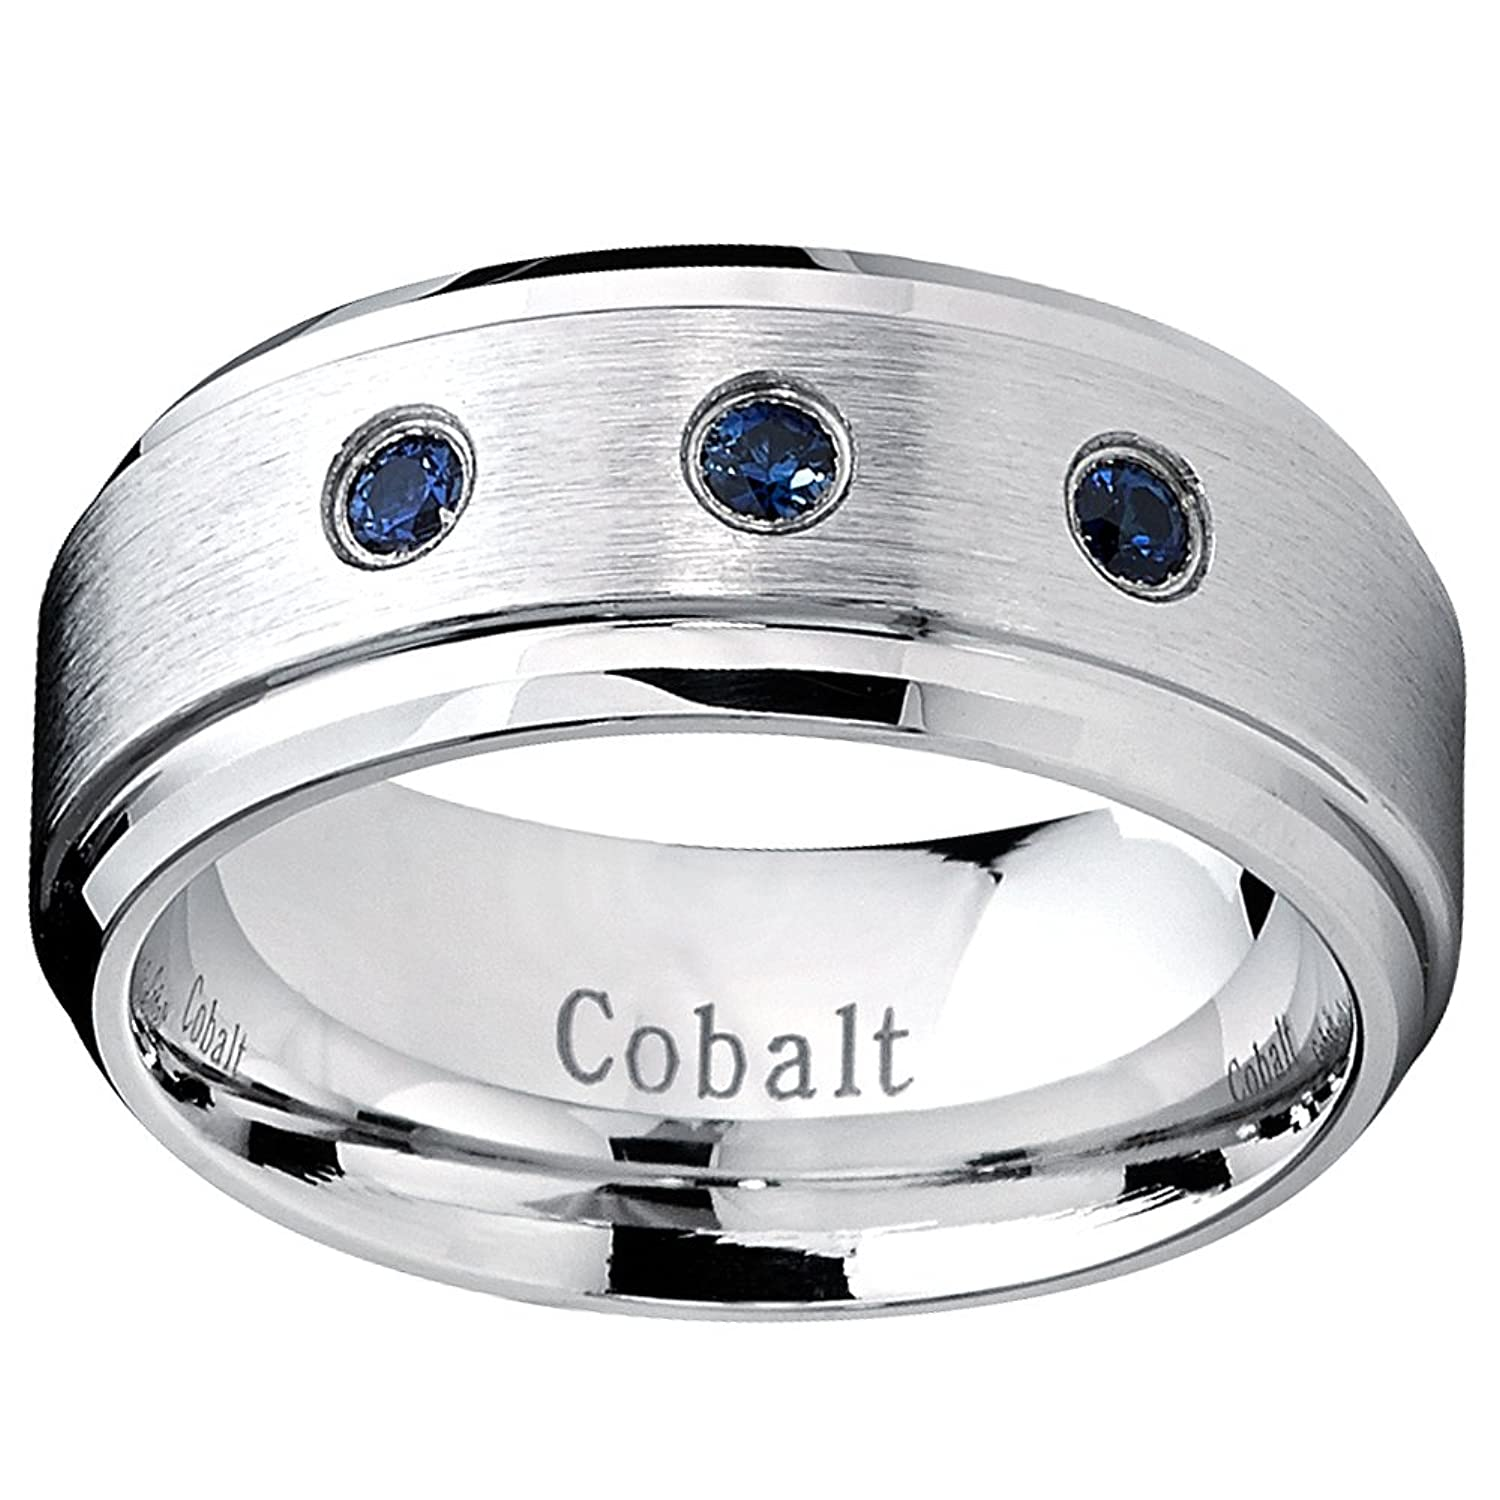 9mm cobalt men s ring wedding band with blue sapphire real stones